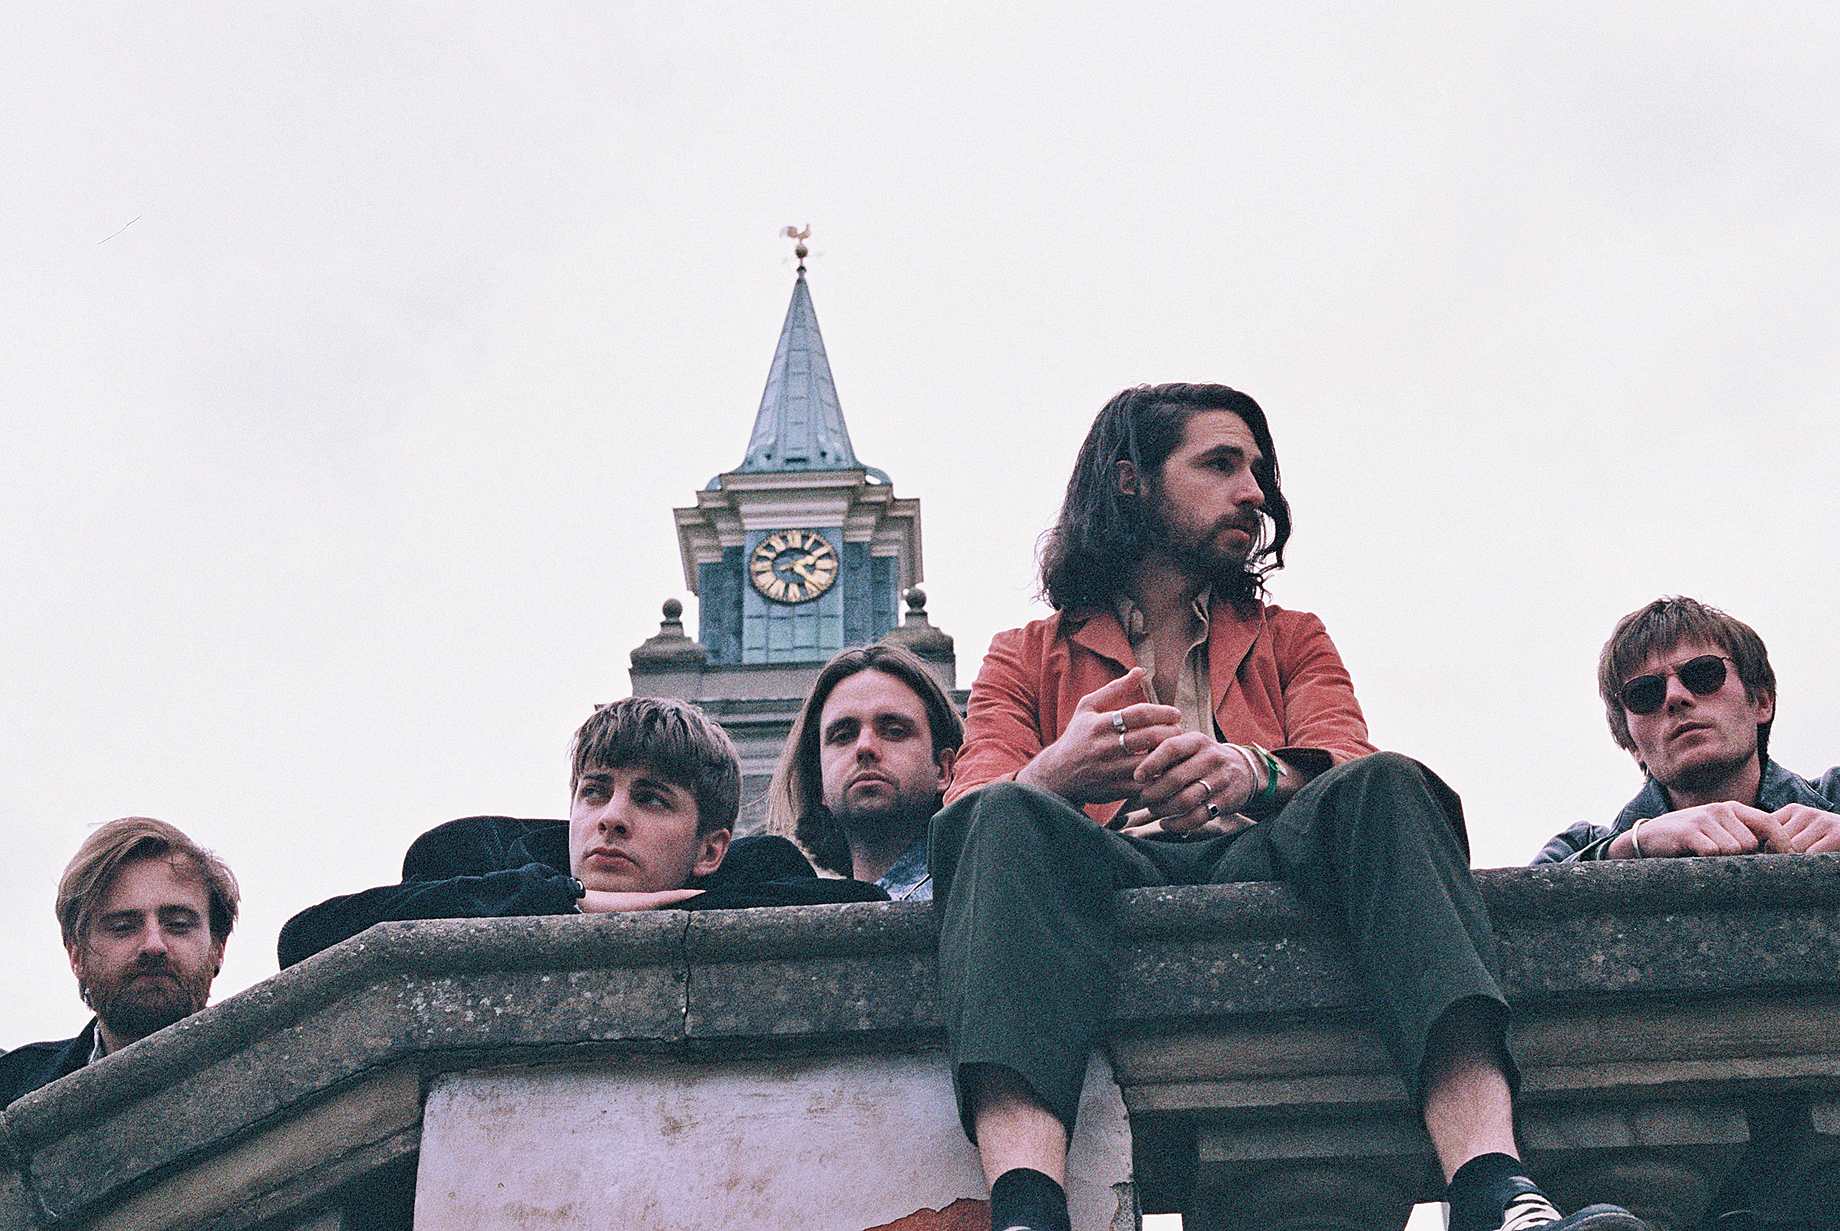 Fontaines D.C. live at Eurosonic 2019